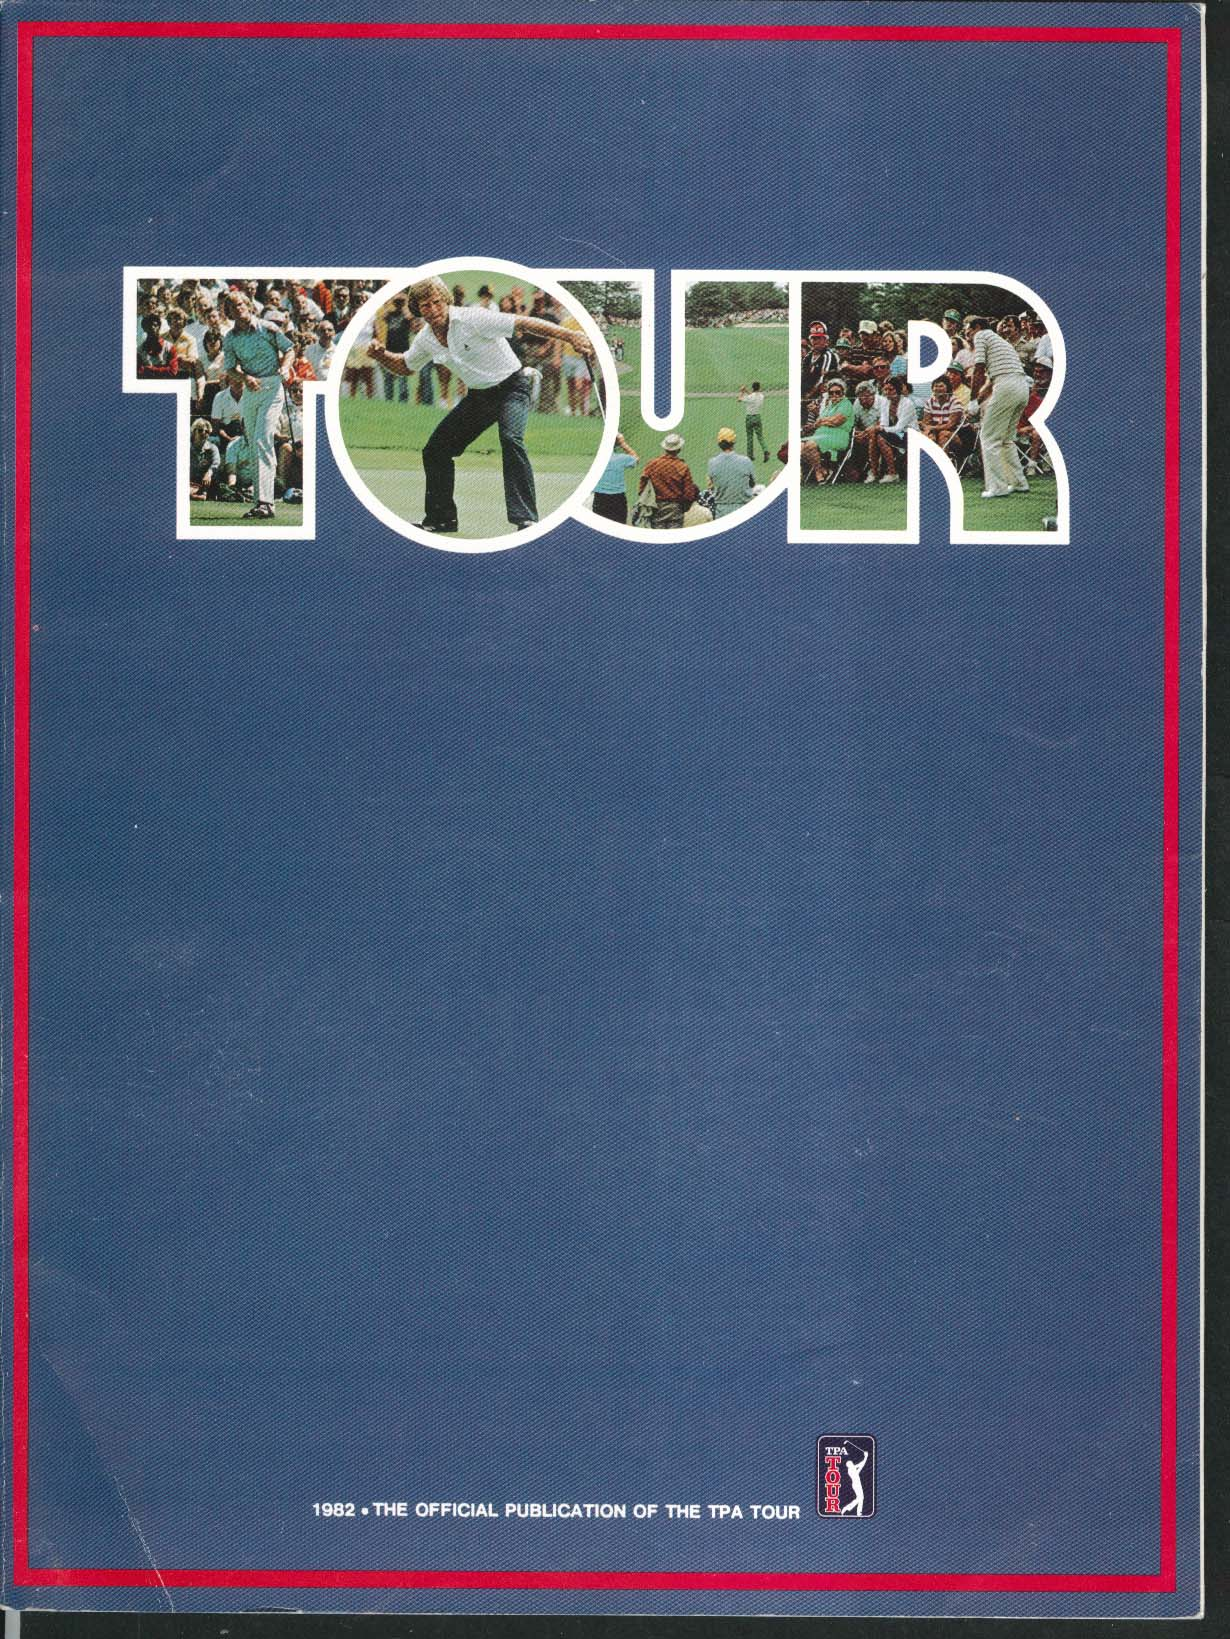 TOUR 82 Official 1982 TPA Publication Johnny Miller Jerry Stephens Gary Hallberg